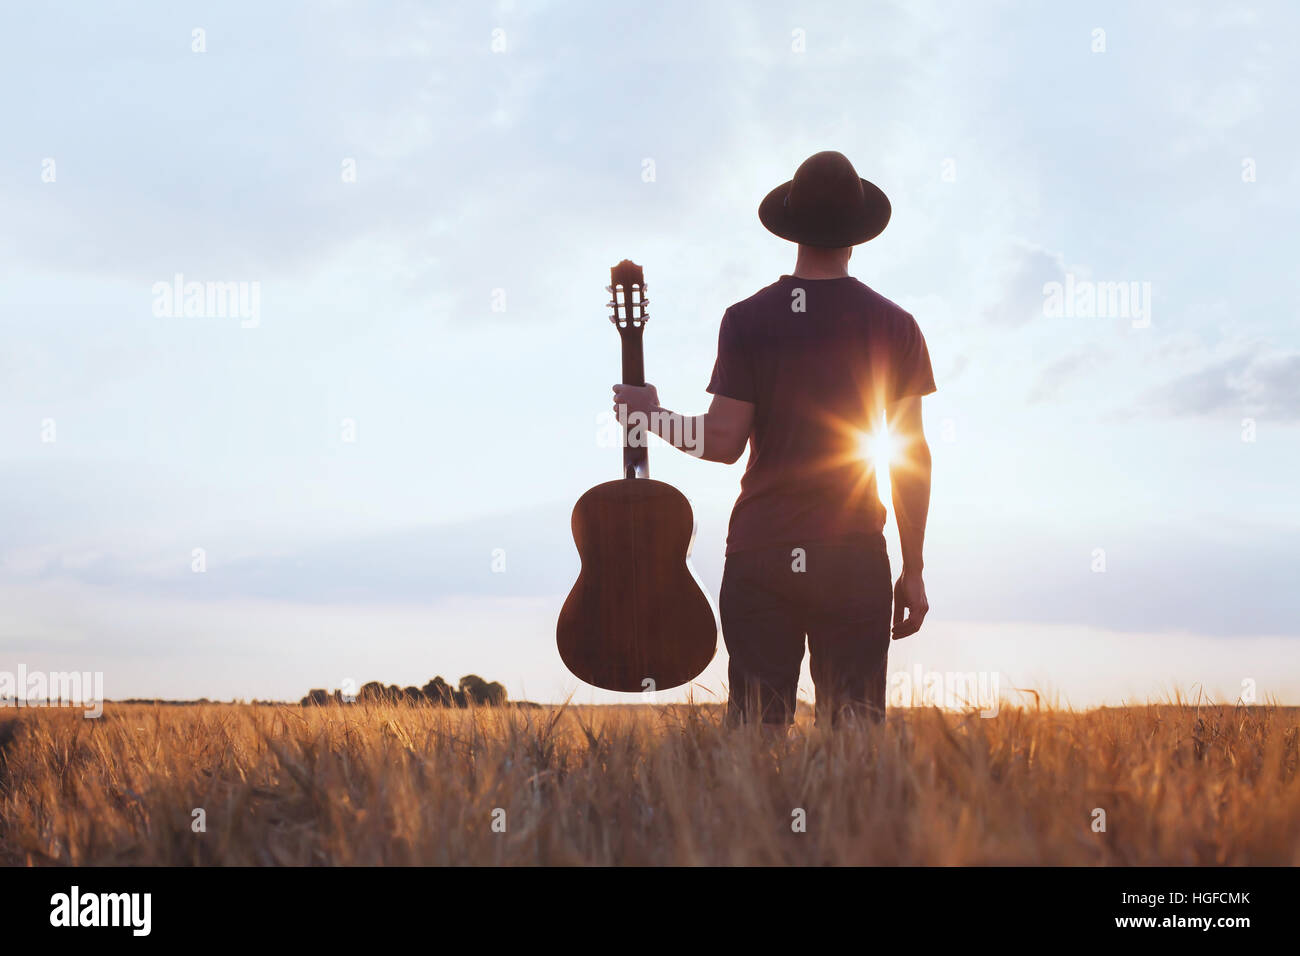 music festival background, silhouette of musician artist with acoustic guitar at sunset field - Stock Image